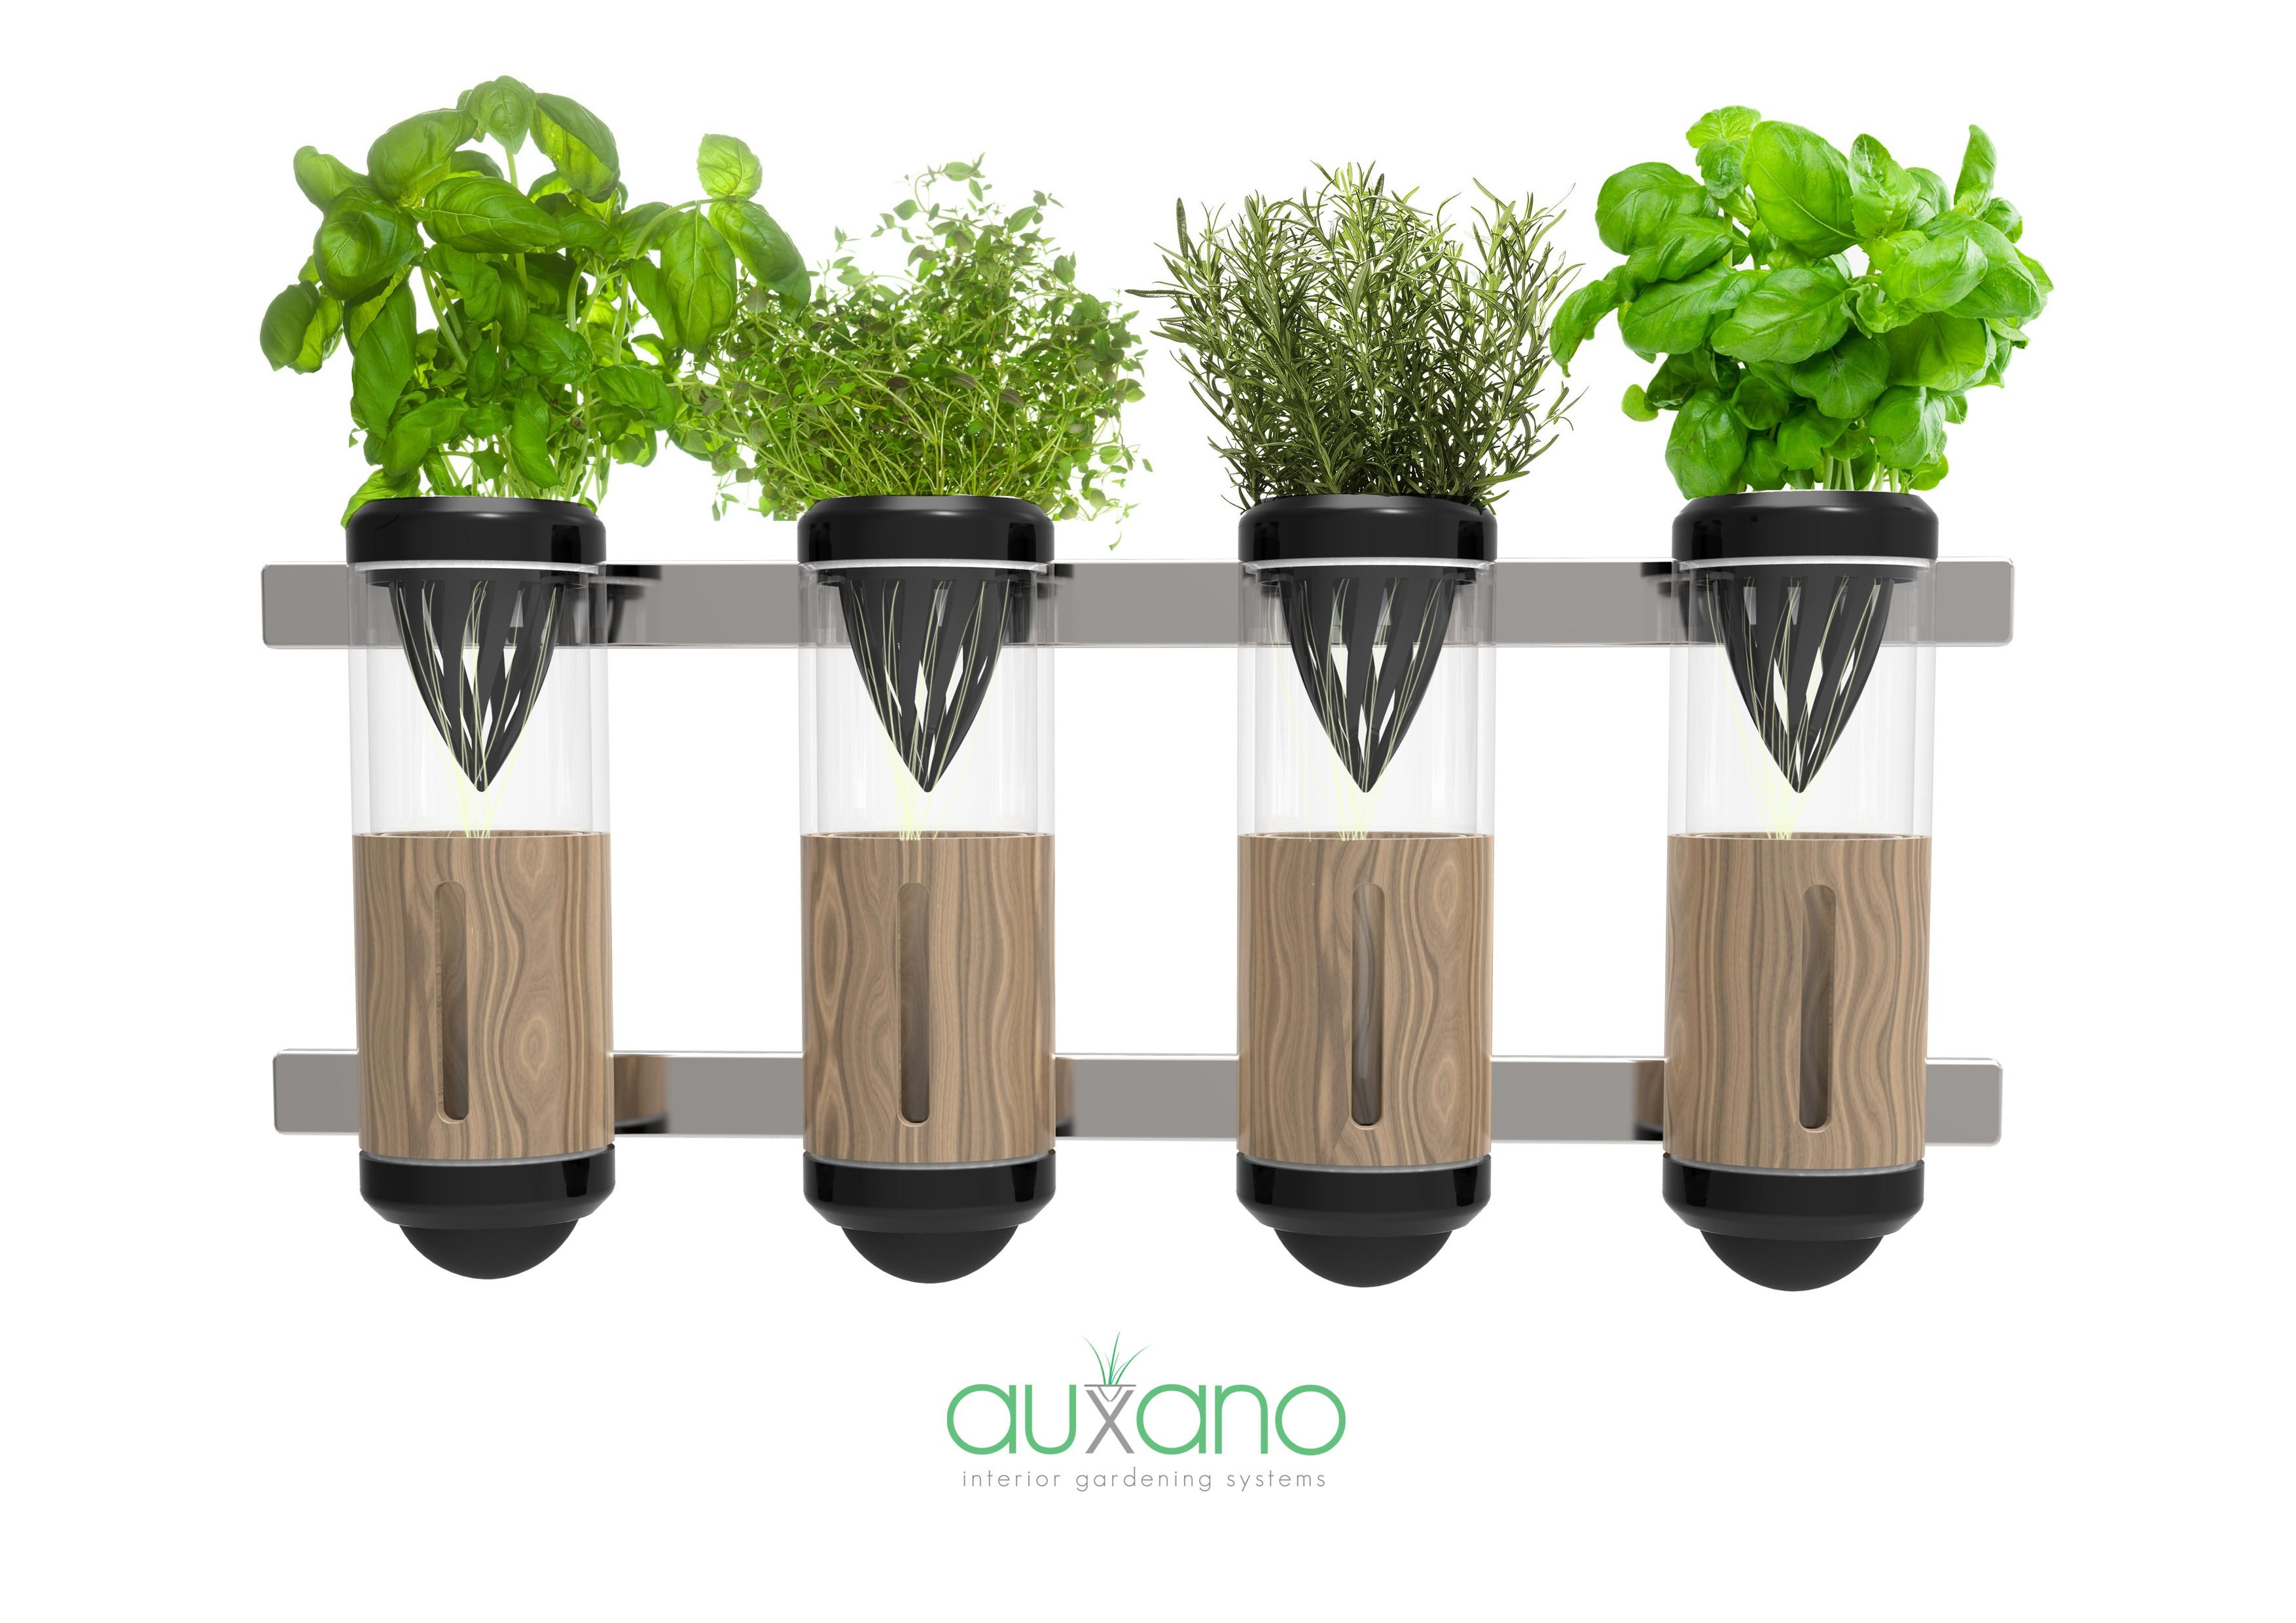 Auxano Hydroponic Vegetable Herb Grower Philip